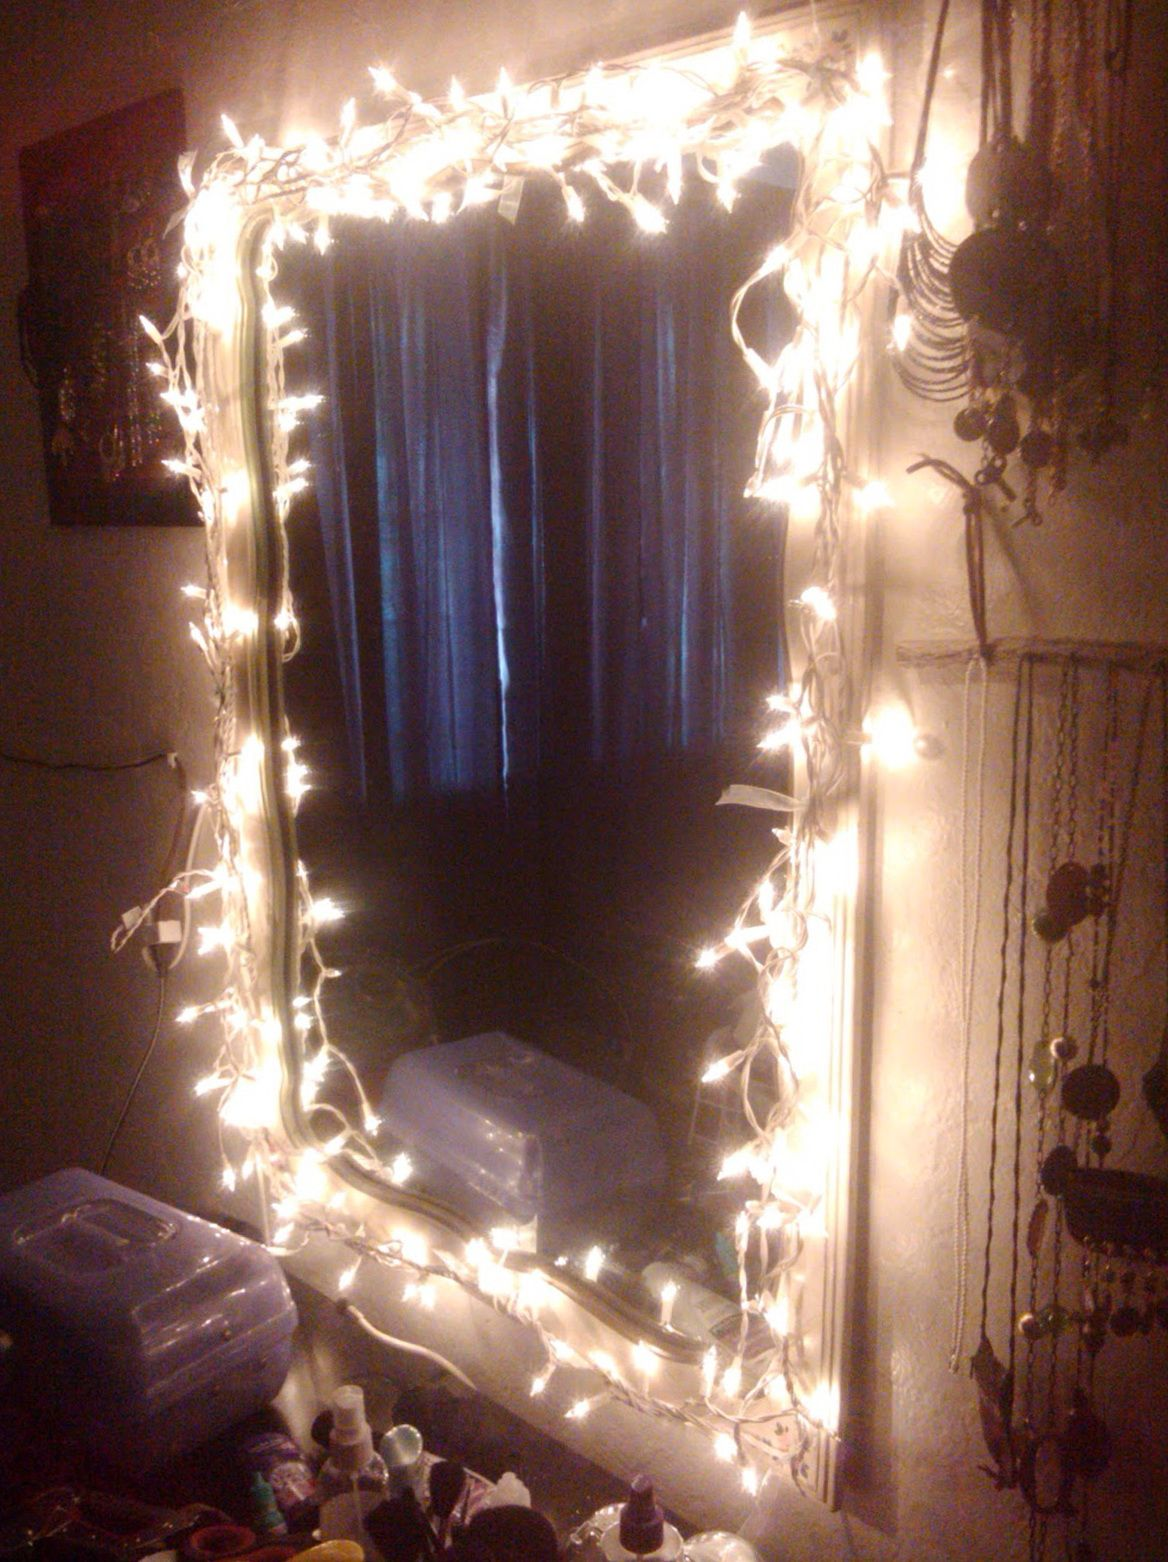 Diy vanity mirror with lights omg too cool been wondering about diy makeup vanity mirror with lights amipublicfo Choice Image